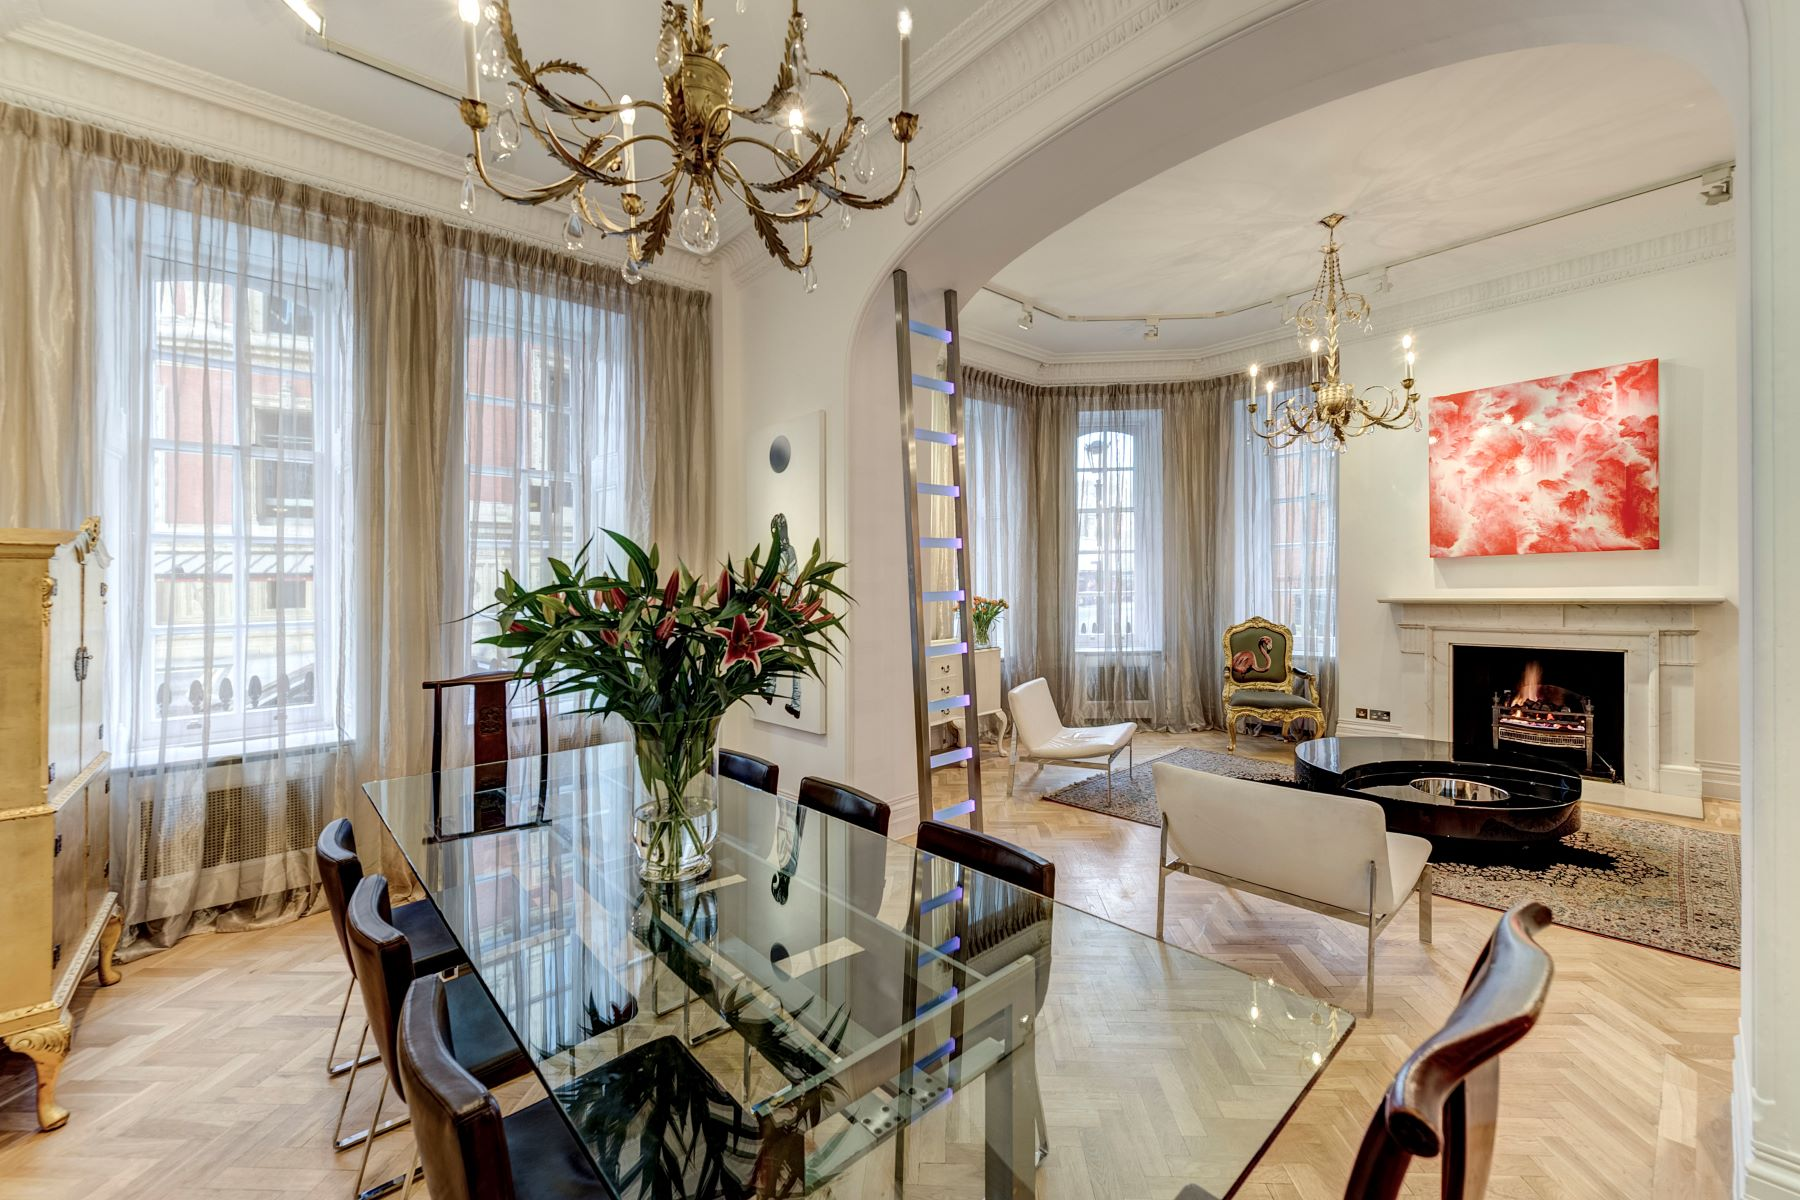 Apartment for Sale at Albert Hall Mansions, Kensington Gore London, England, United Kingdom